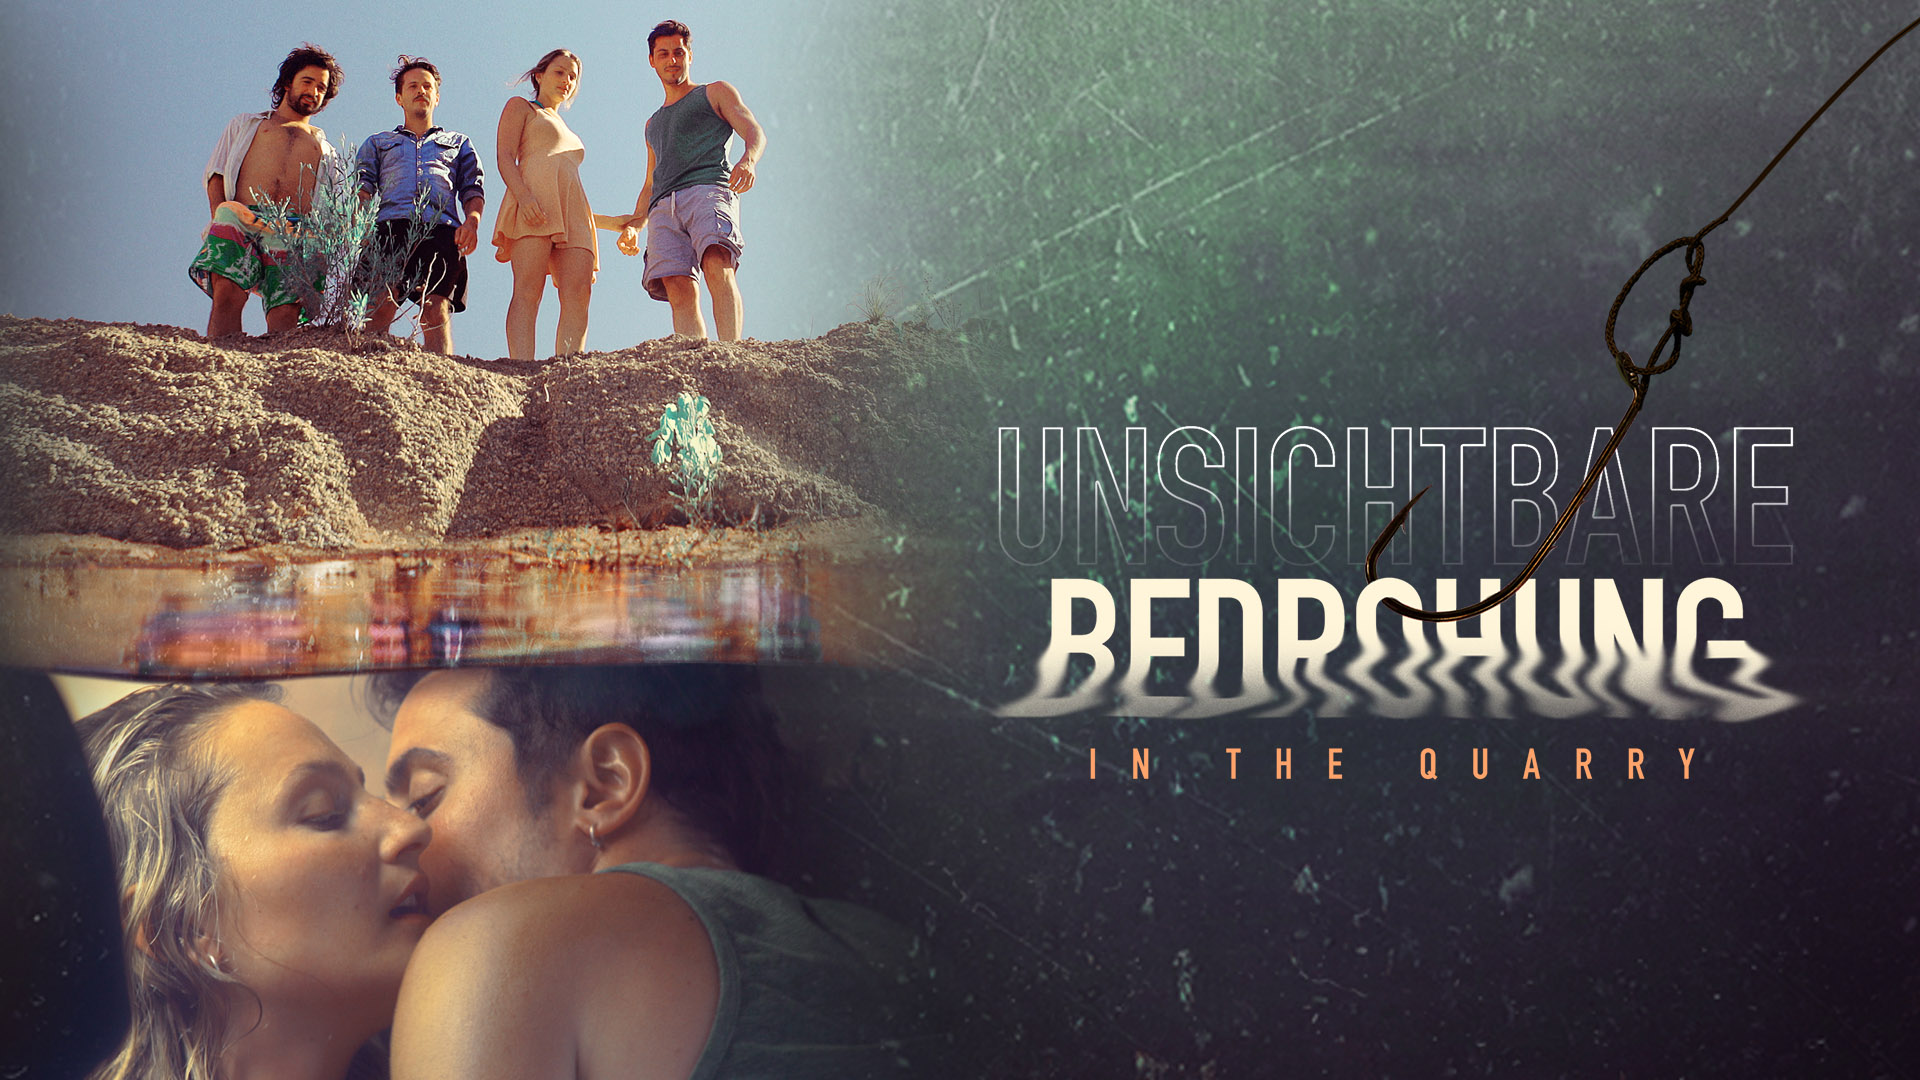 Unsichtbare Bedrohung: In the Quarry